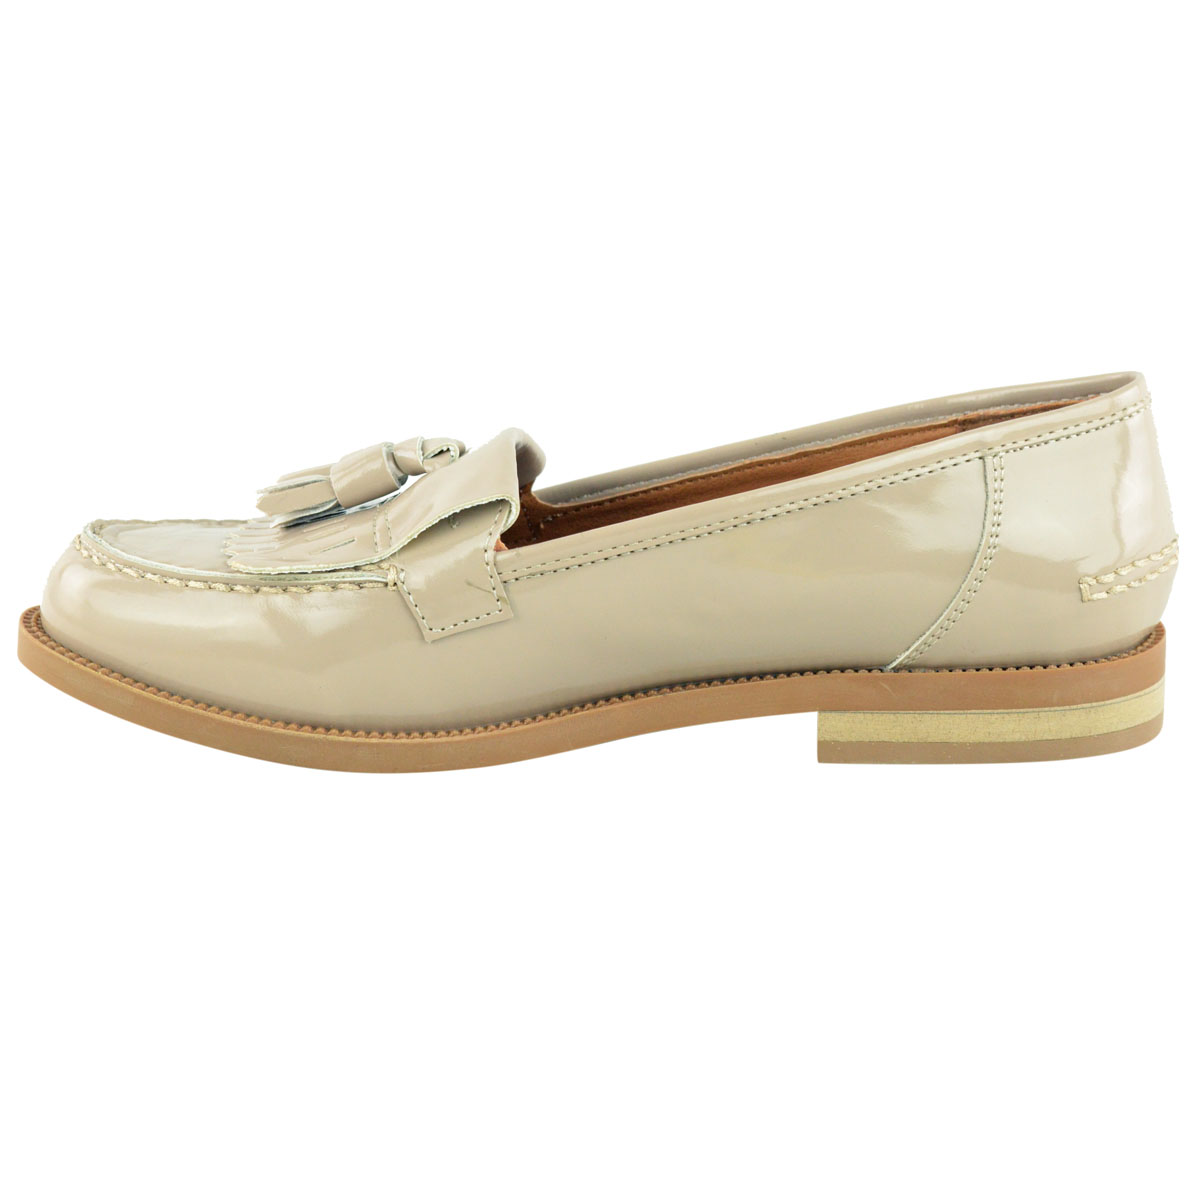 Womens-Ladies-Loafers-Brogues-Pumps-Casual-School-Office-Comfy-Work-Flats-Size thumbnail 24